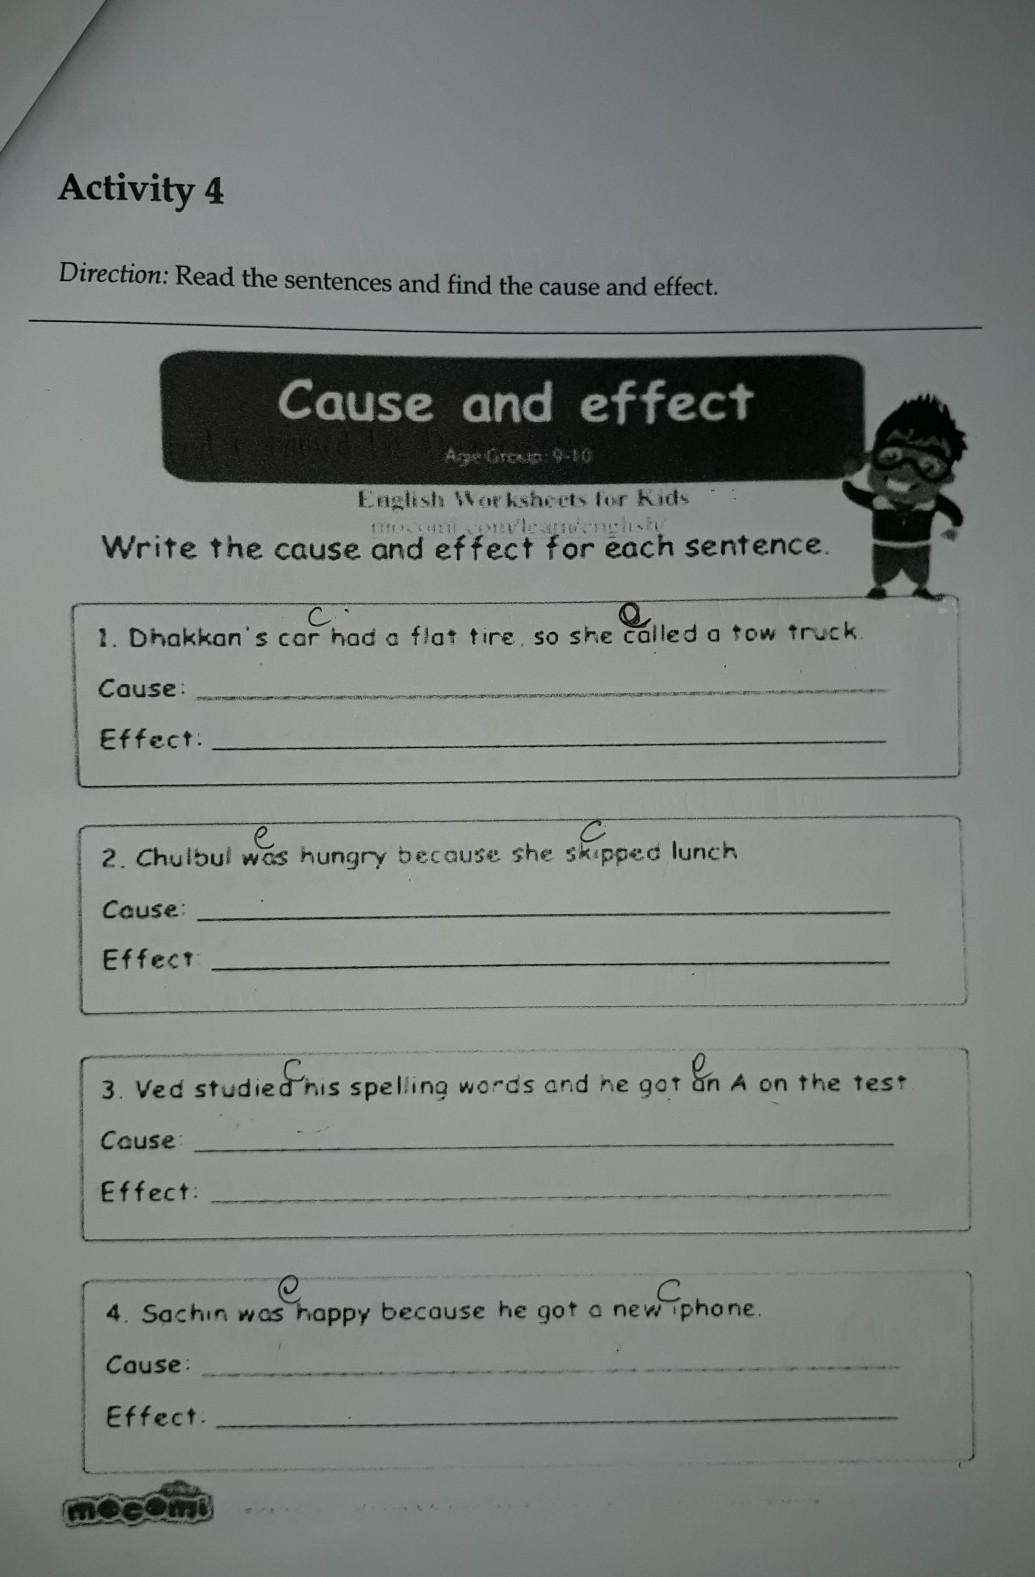 Contoh Kalimat Cause And Effect : contoh, kalimat, cause, effect, Write, Cause, Effect, Sentence, Brainly.co.id